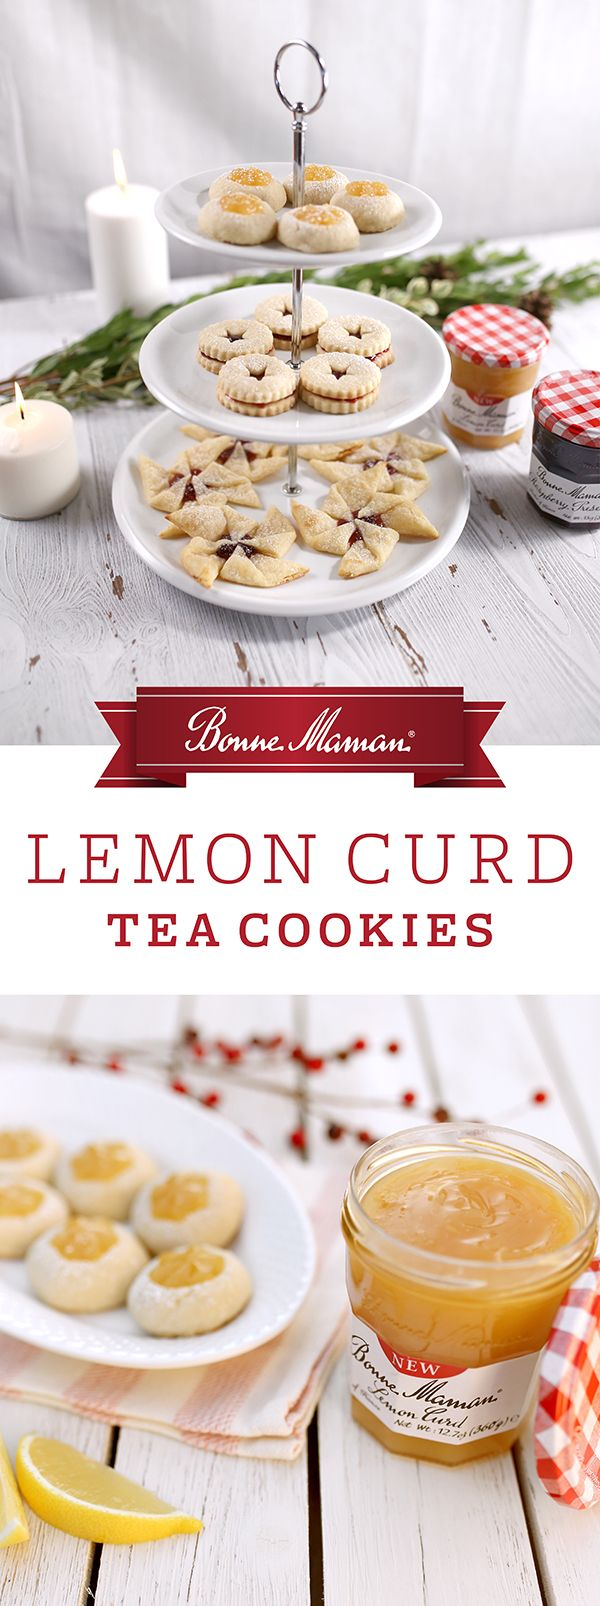 Quick and easy to make, these mini cookies are light and joyfully sweet with our versatile Bonne Maman Lemon Curd Spread. Enjoy as an afternoon treat with your favorite cup of tea.